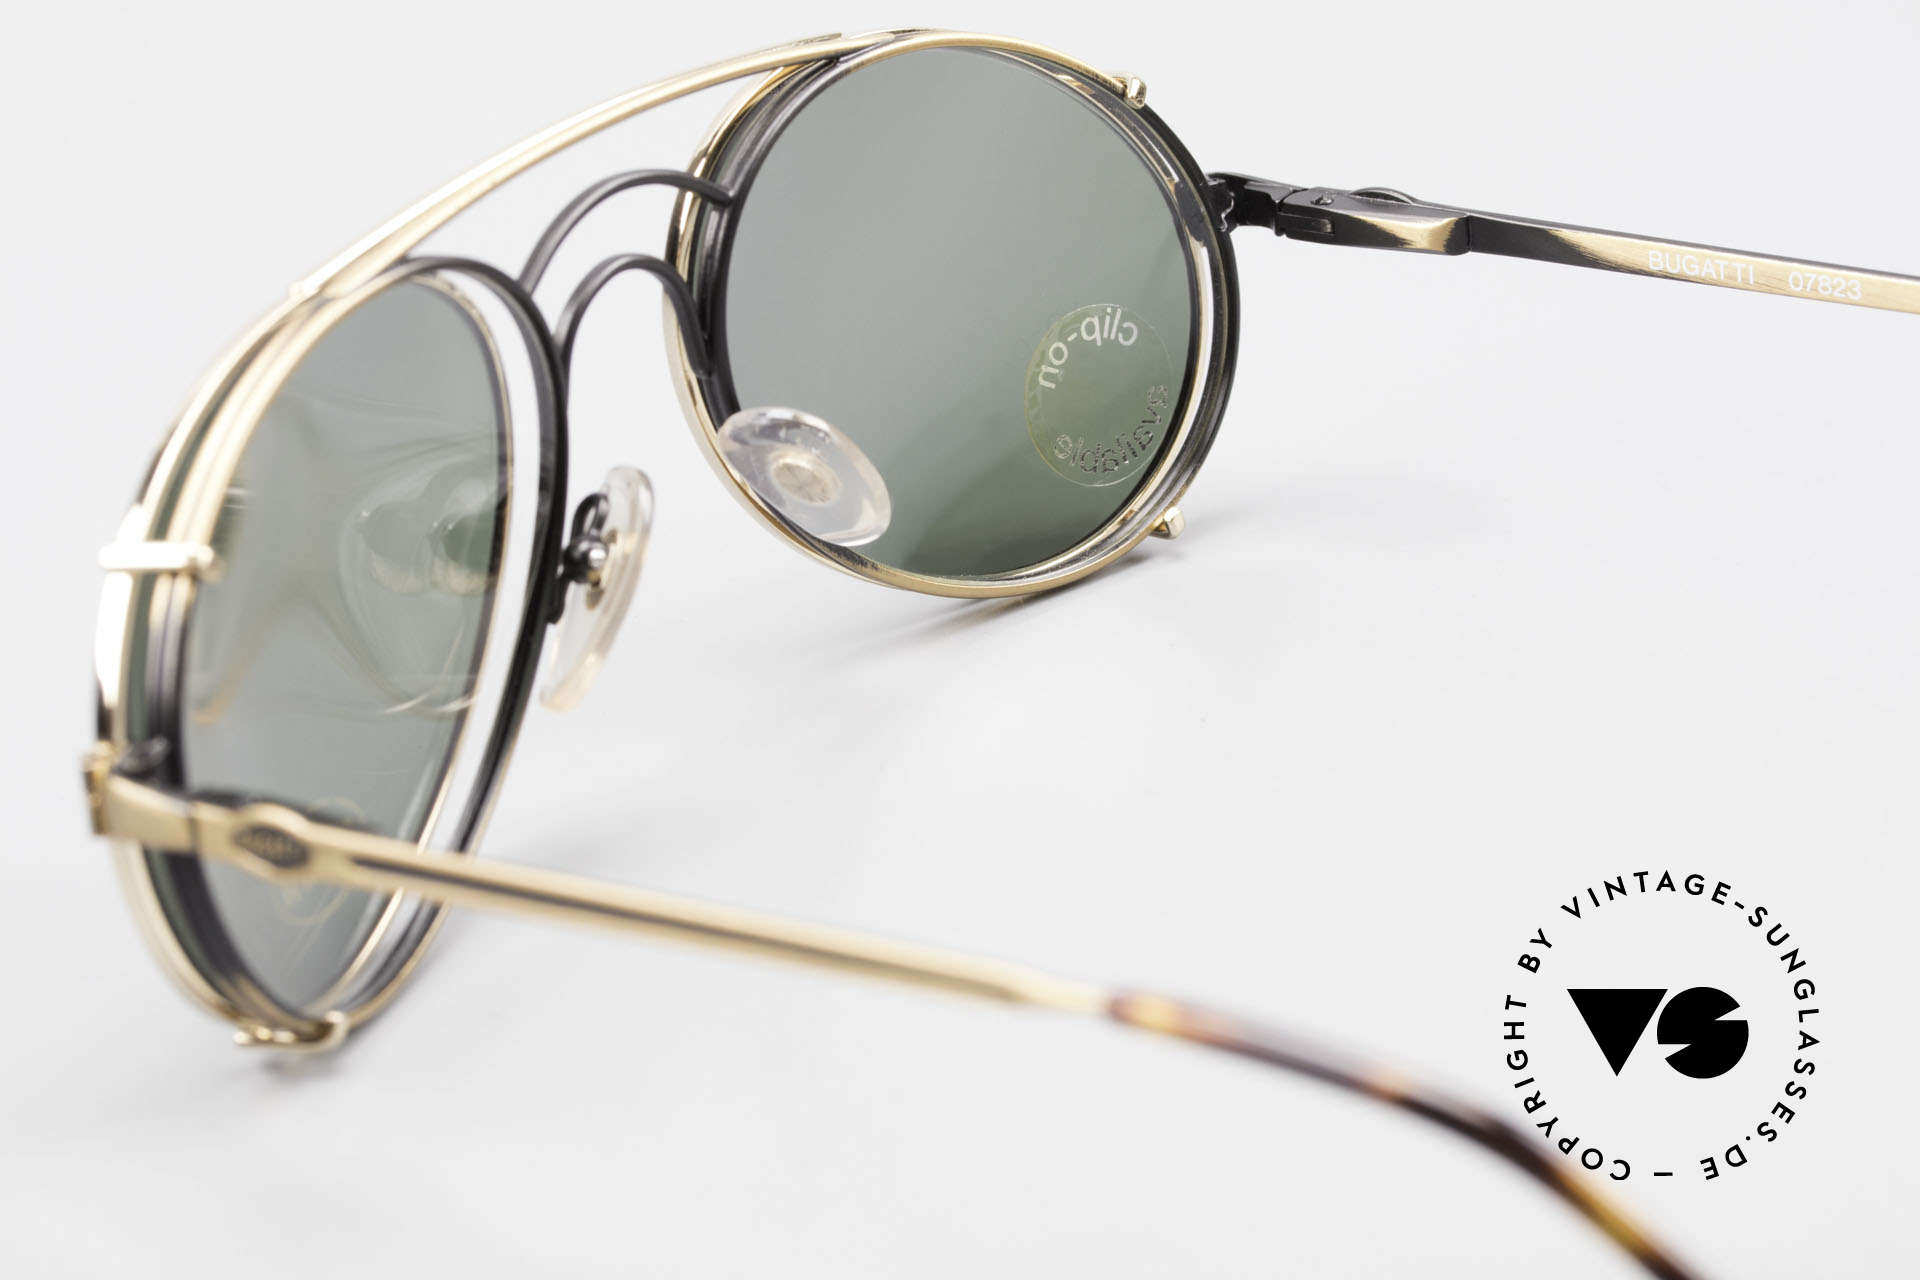 Bugatti 07823 Old 80's Glasses With Clip On, NO RETRO fashion, but an authentic old 80's original, Made for Men